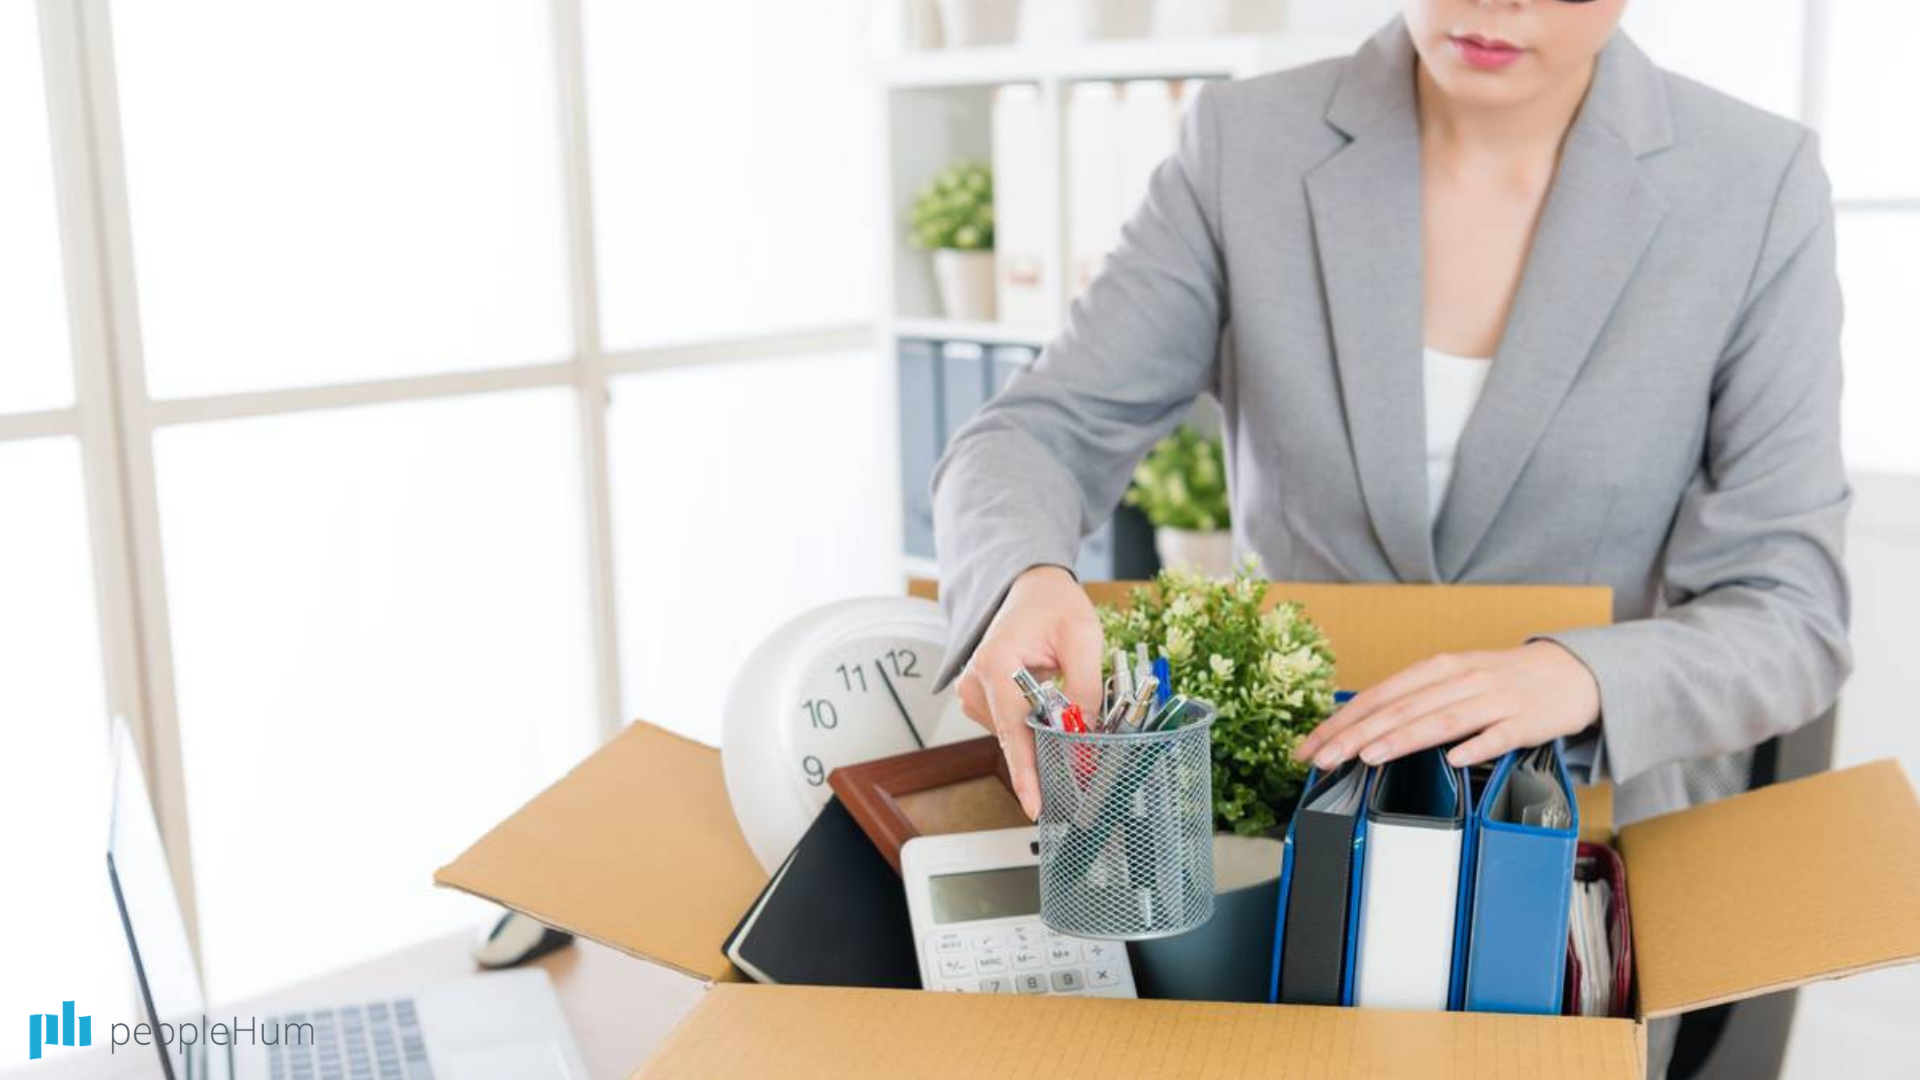 Employee termination-How to handle termination effectively.